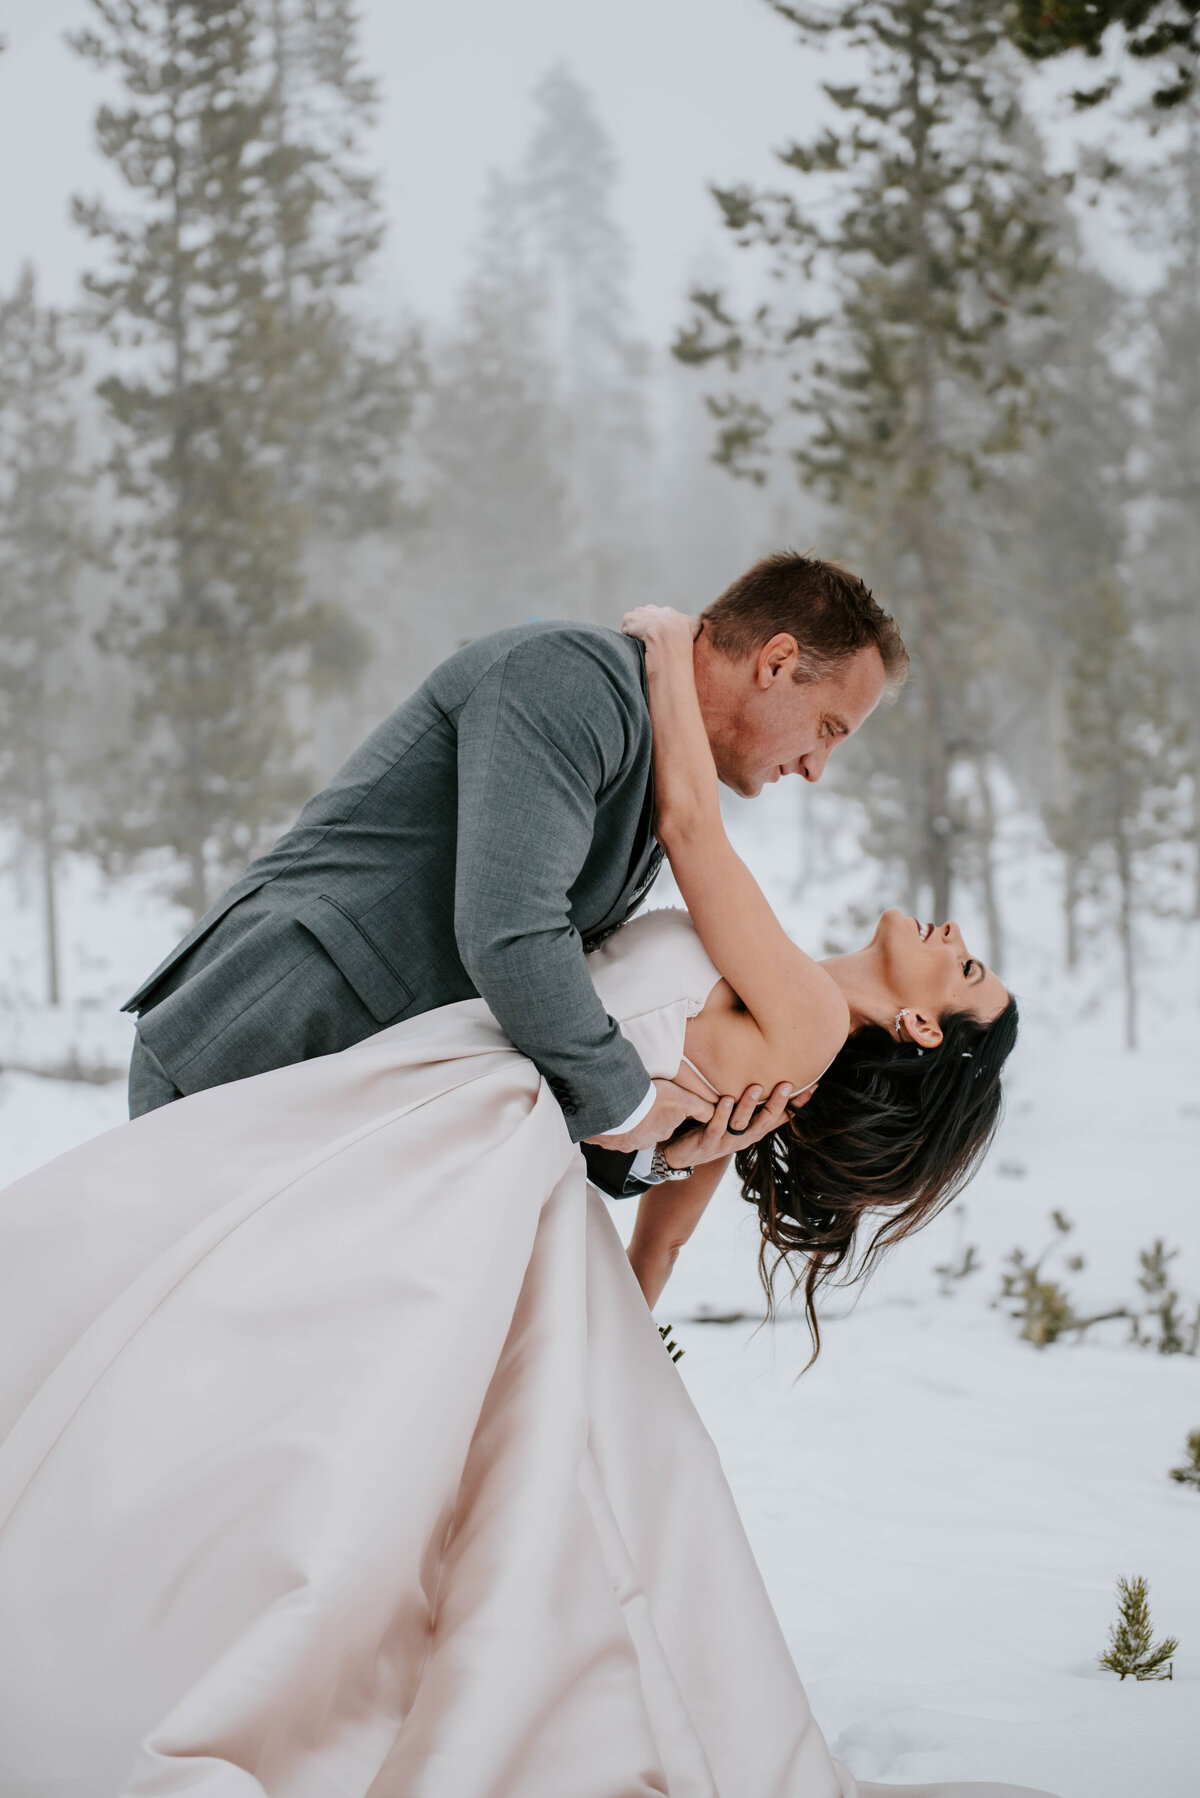 mt-bachelor-snow-winter-elopement-bend-oregon-wedding-photographer-2393